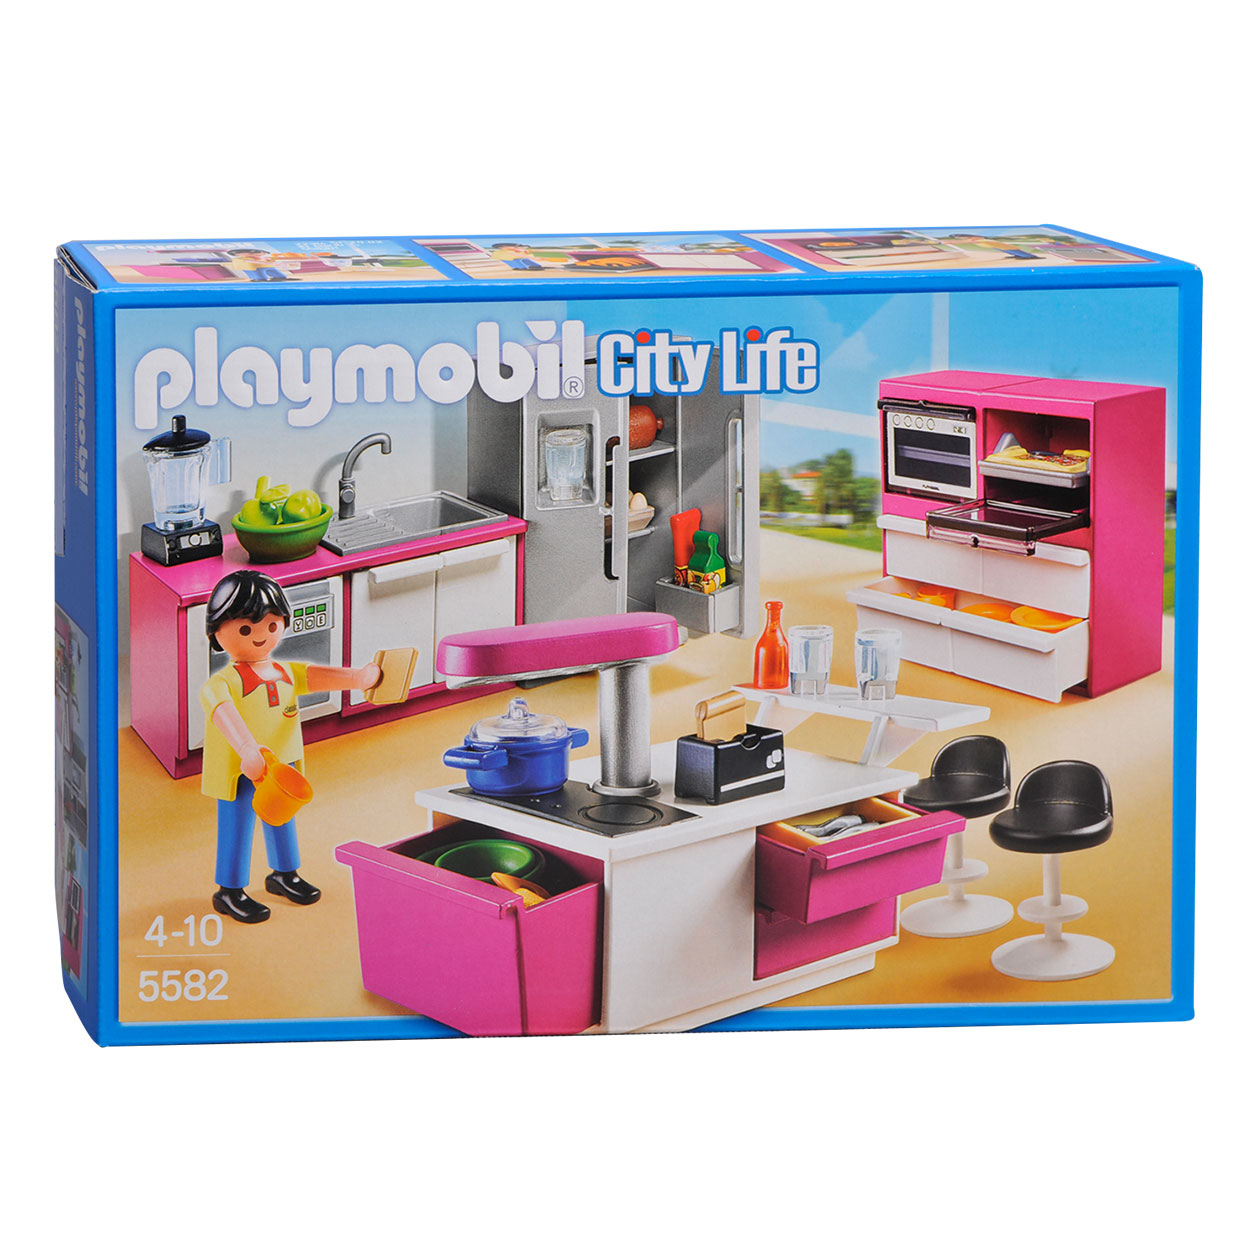 Beautiful cuisine maison moderne playmobil gallery home for Playmobil maison moderne cuisine